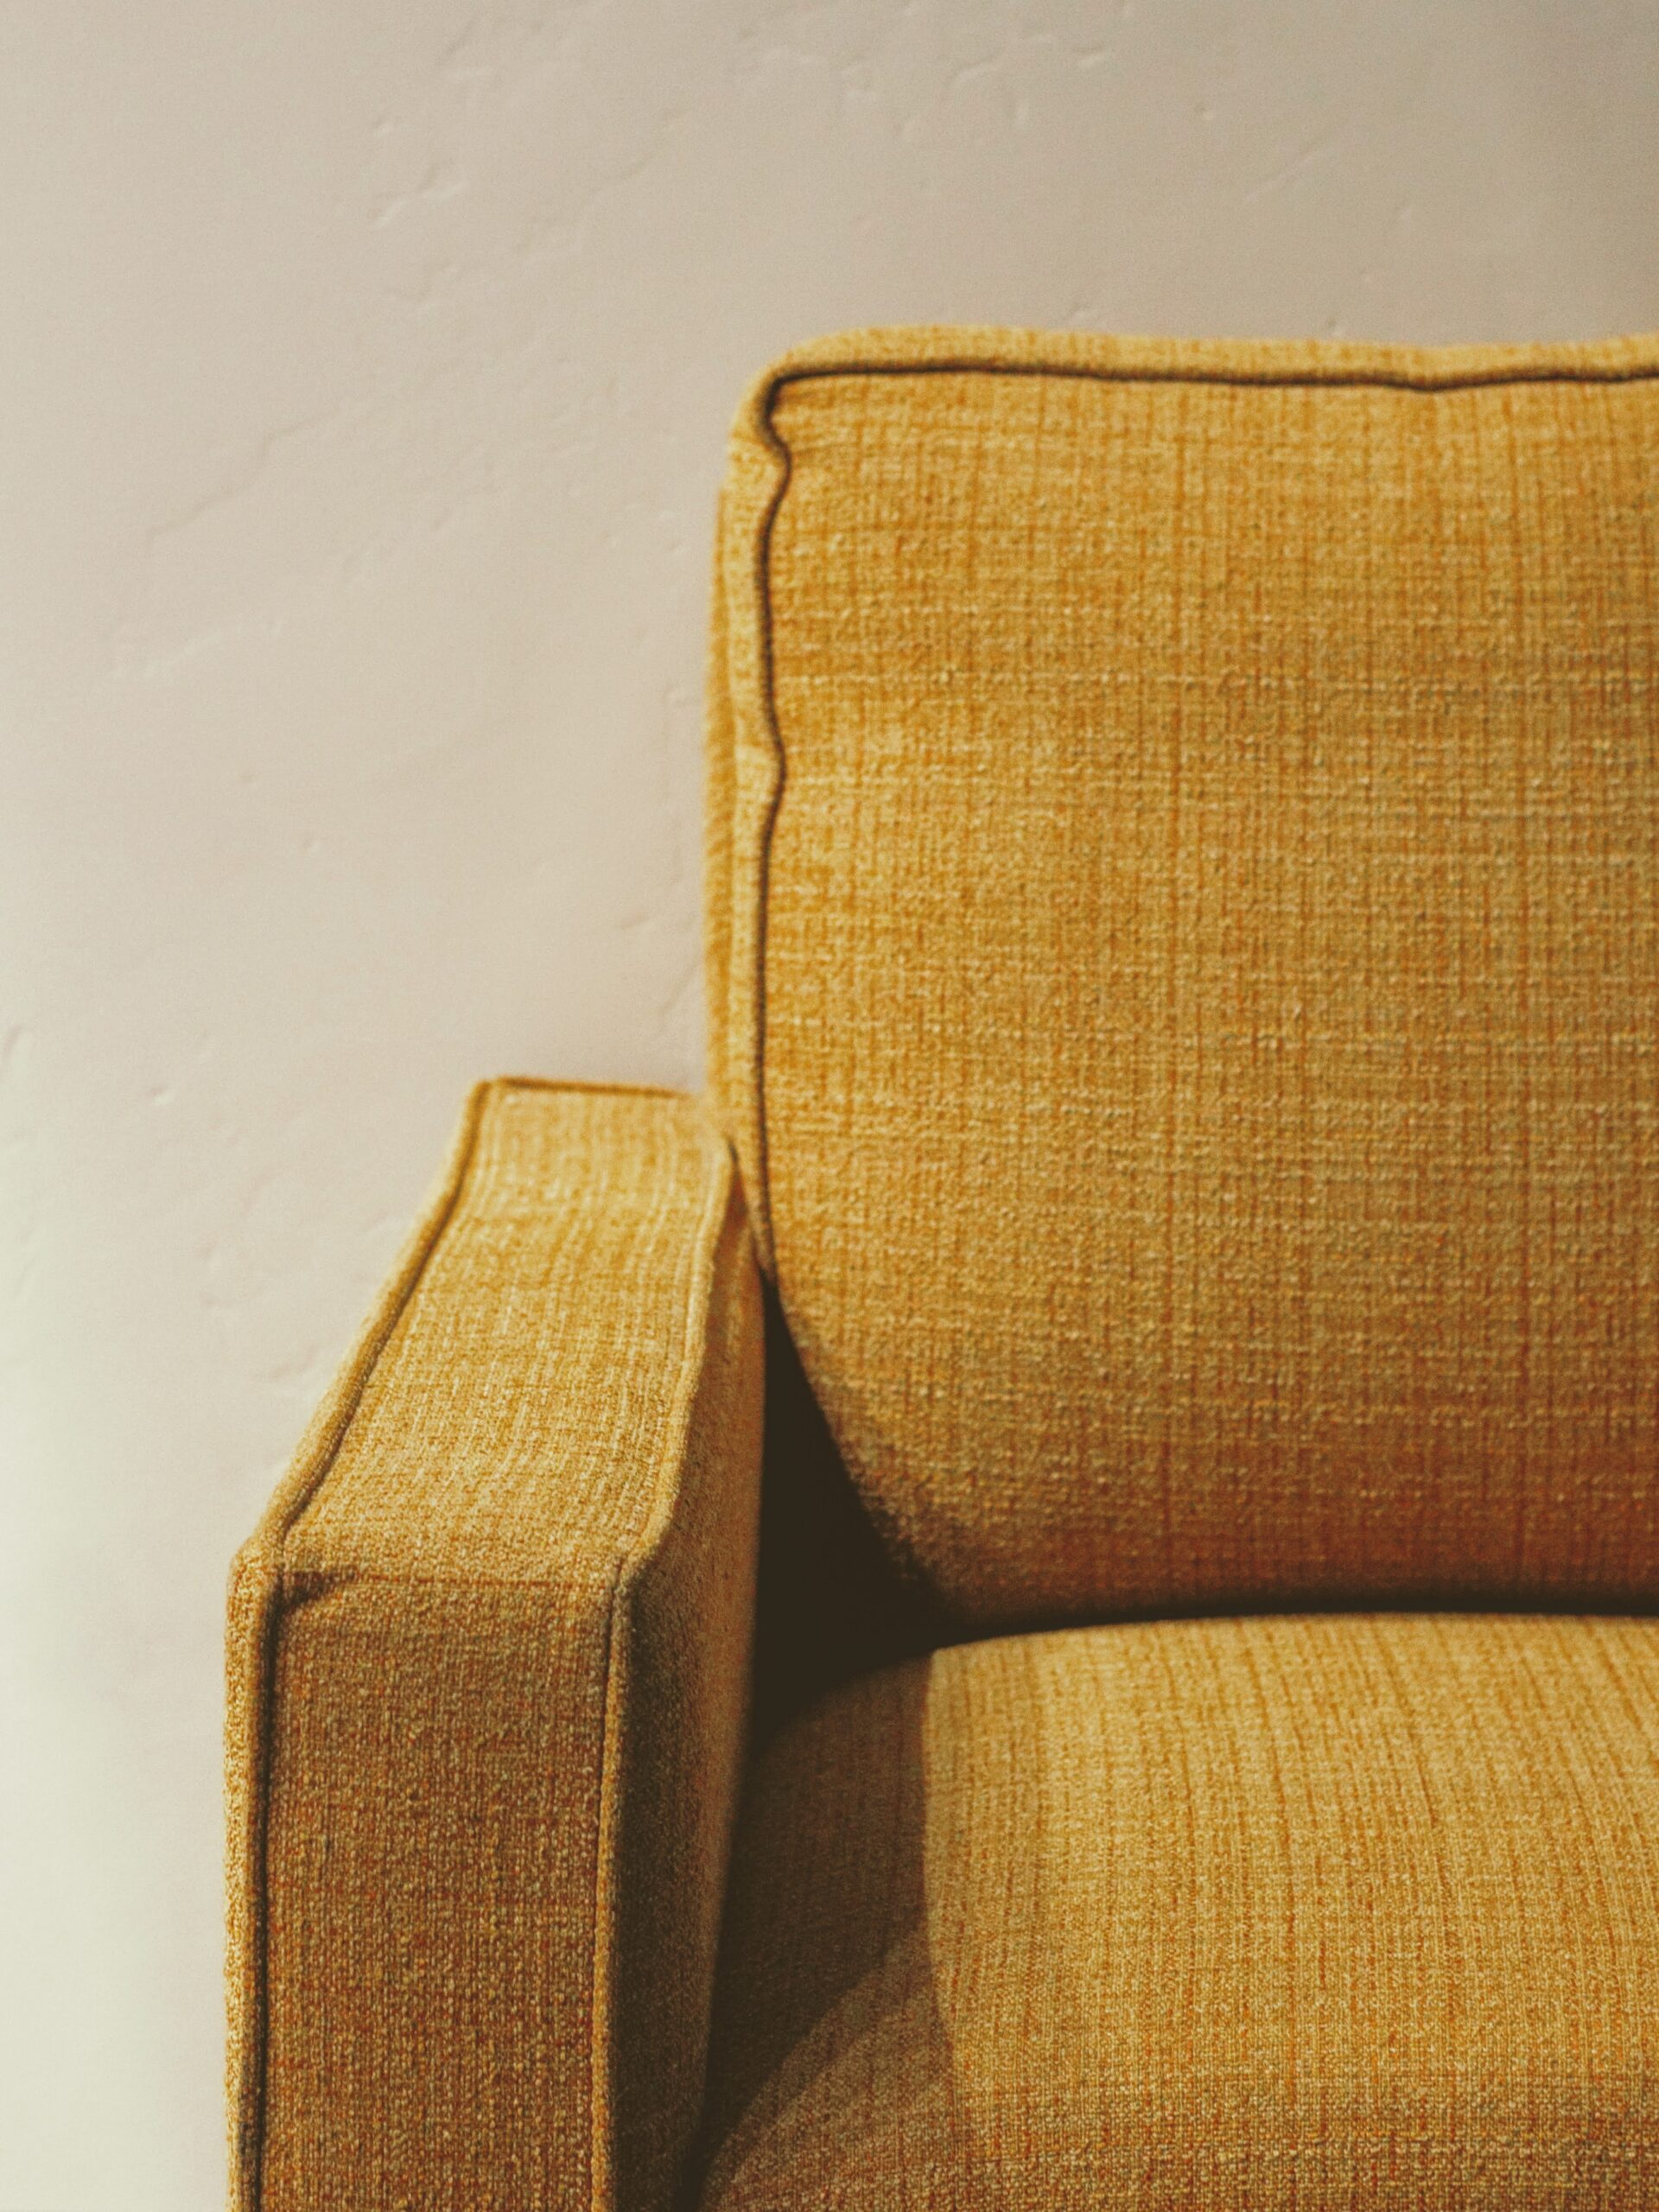 It's Probably Been Too Long Since You've Had an Upholstery Cleaning